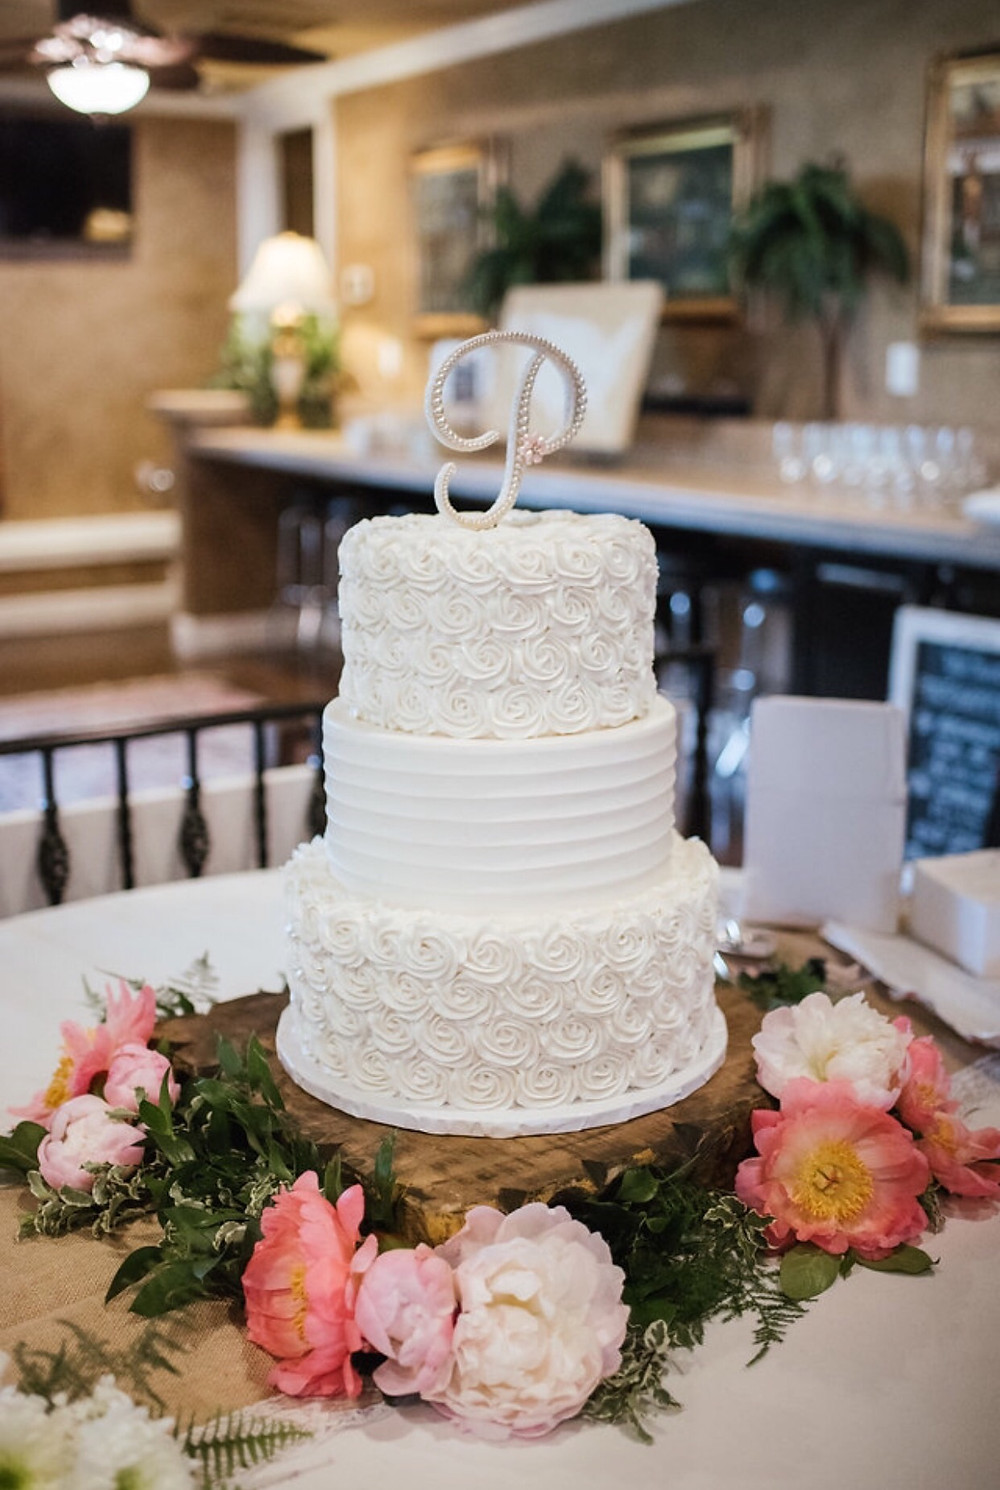 Franklin, TN Wedding + Julia's Bakery